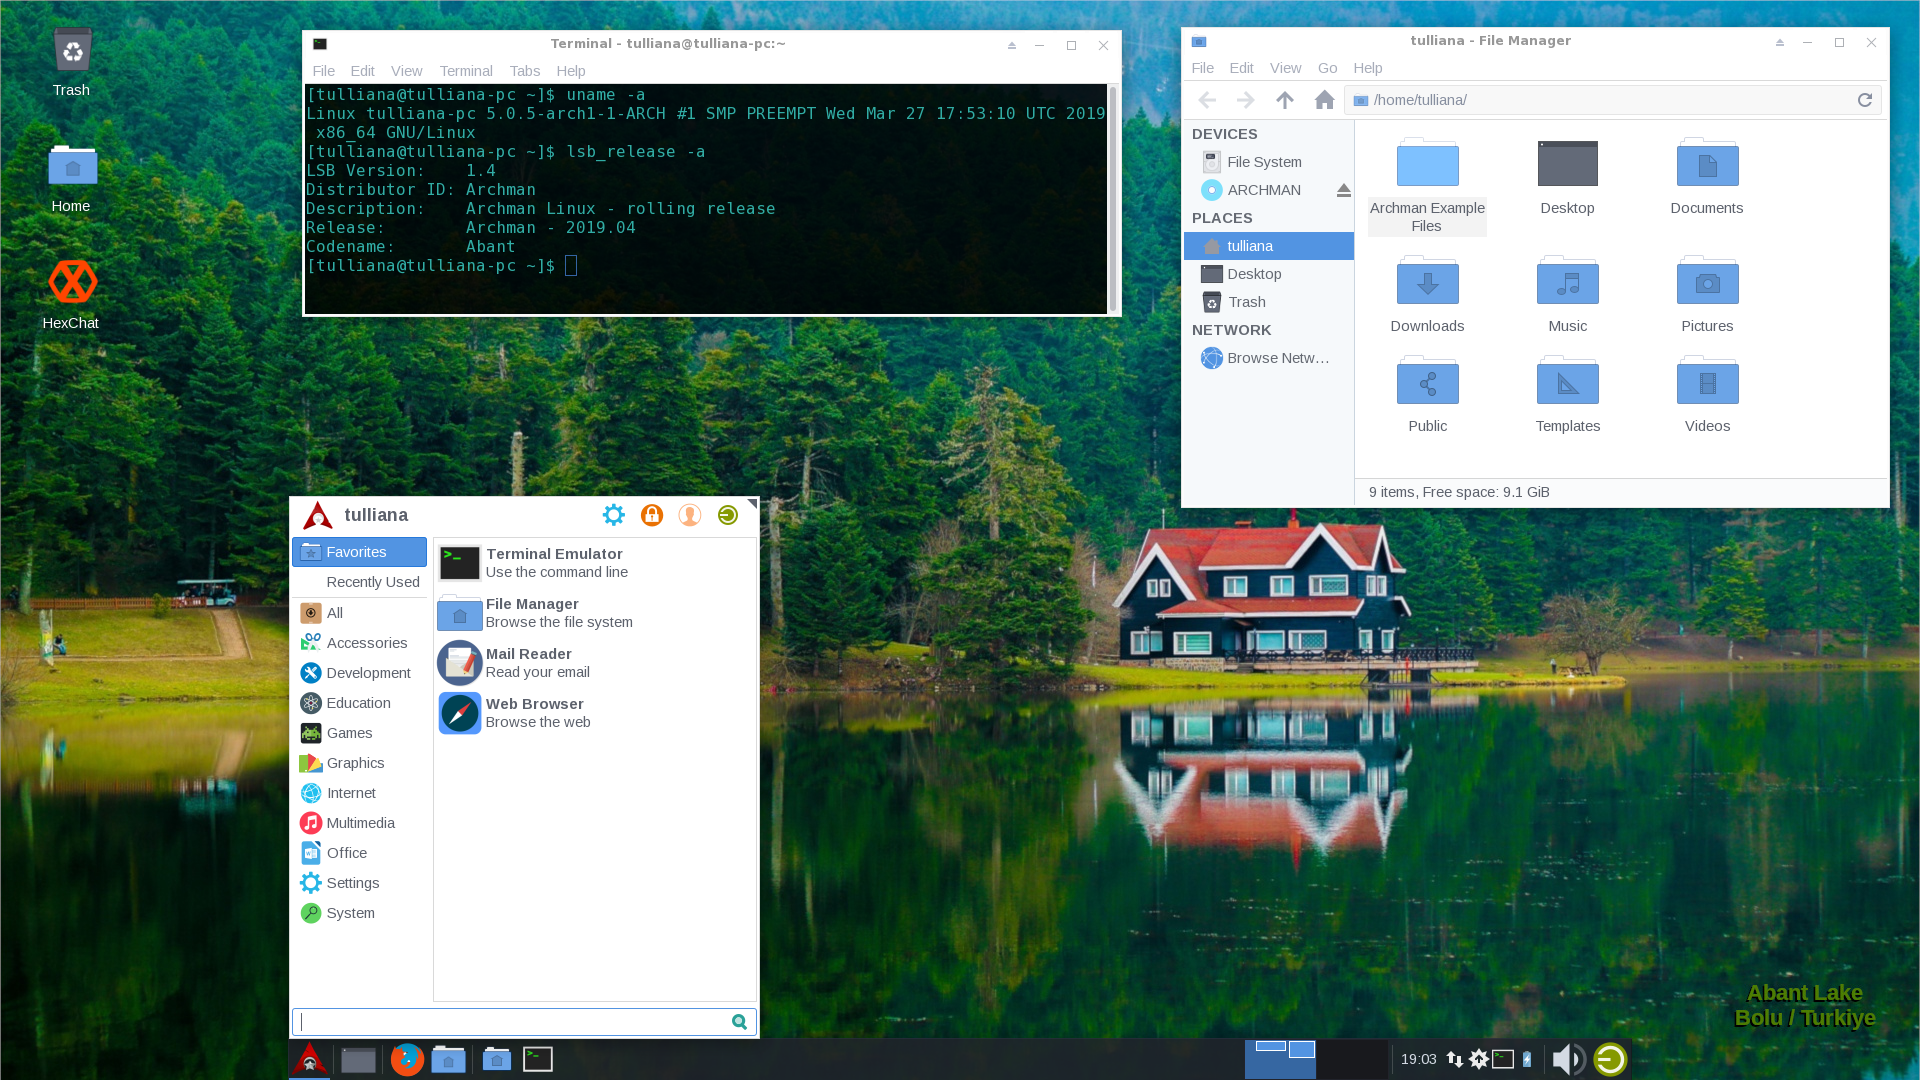 archman-xfce-abant-golcuk-demo.png